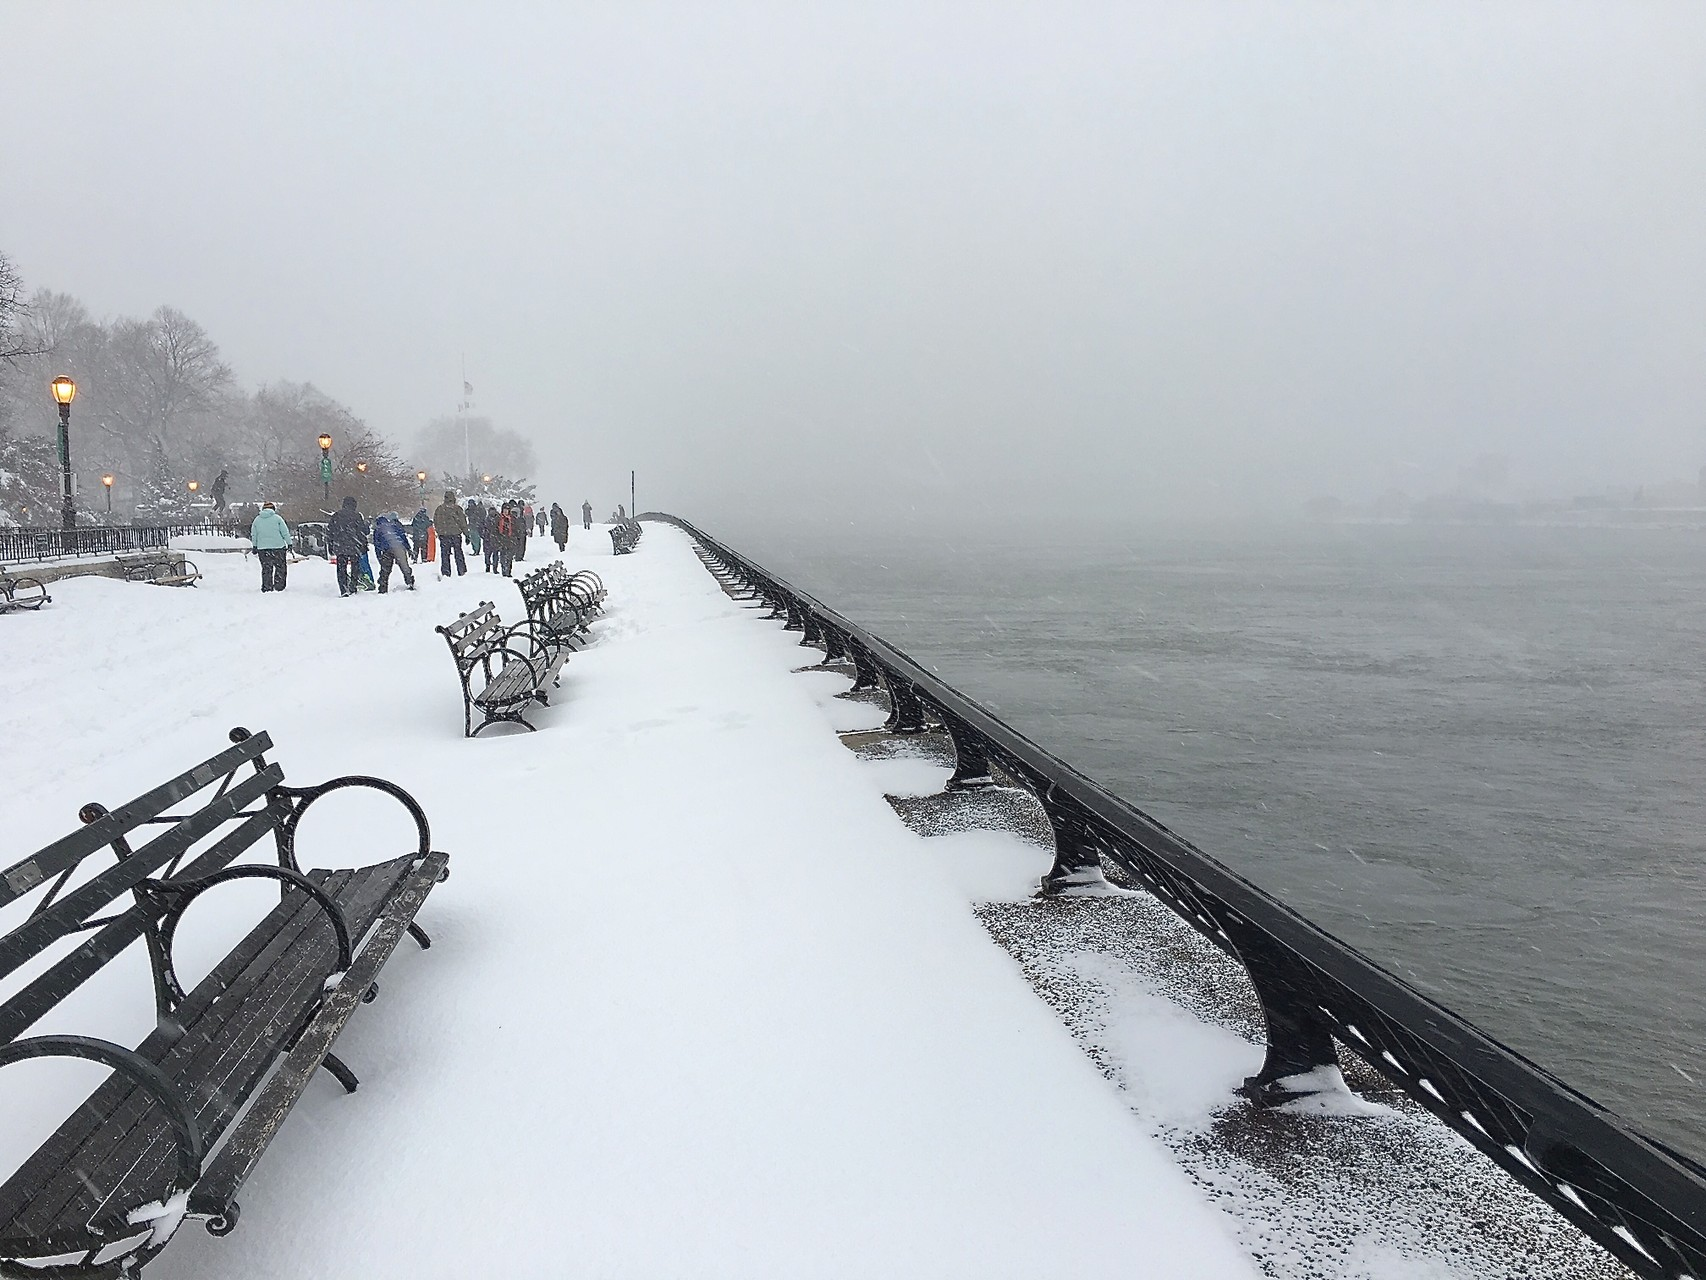 Carl Schurz Park, East River, Jan. 23, 2016